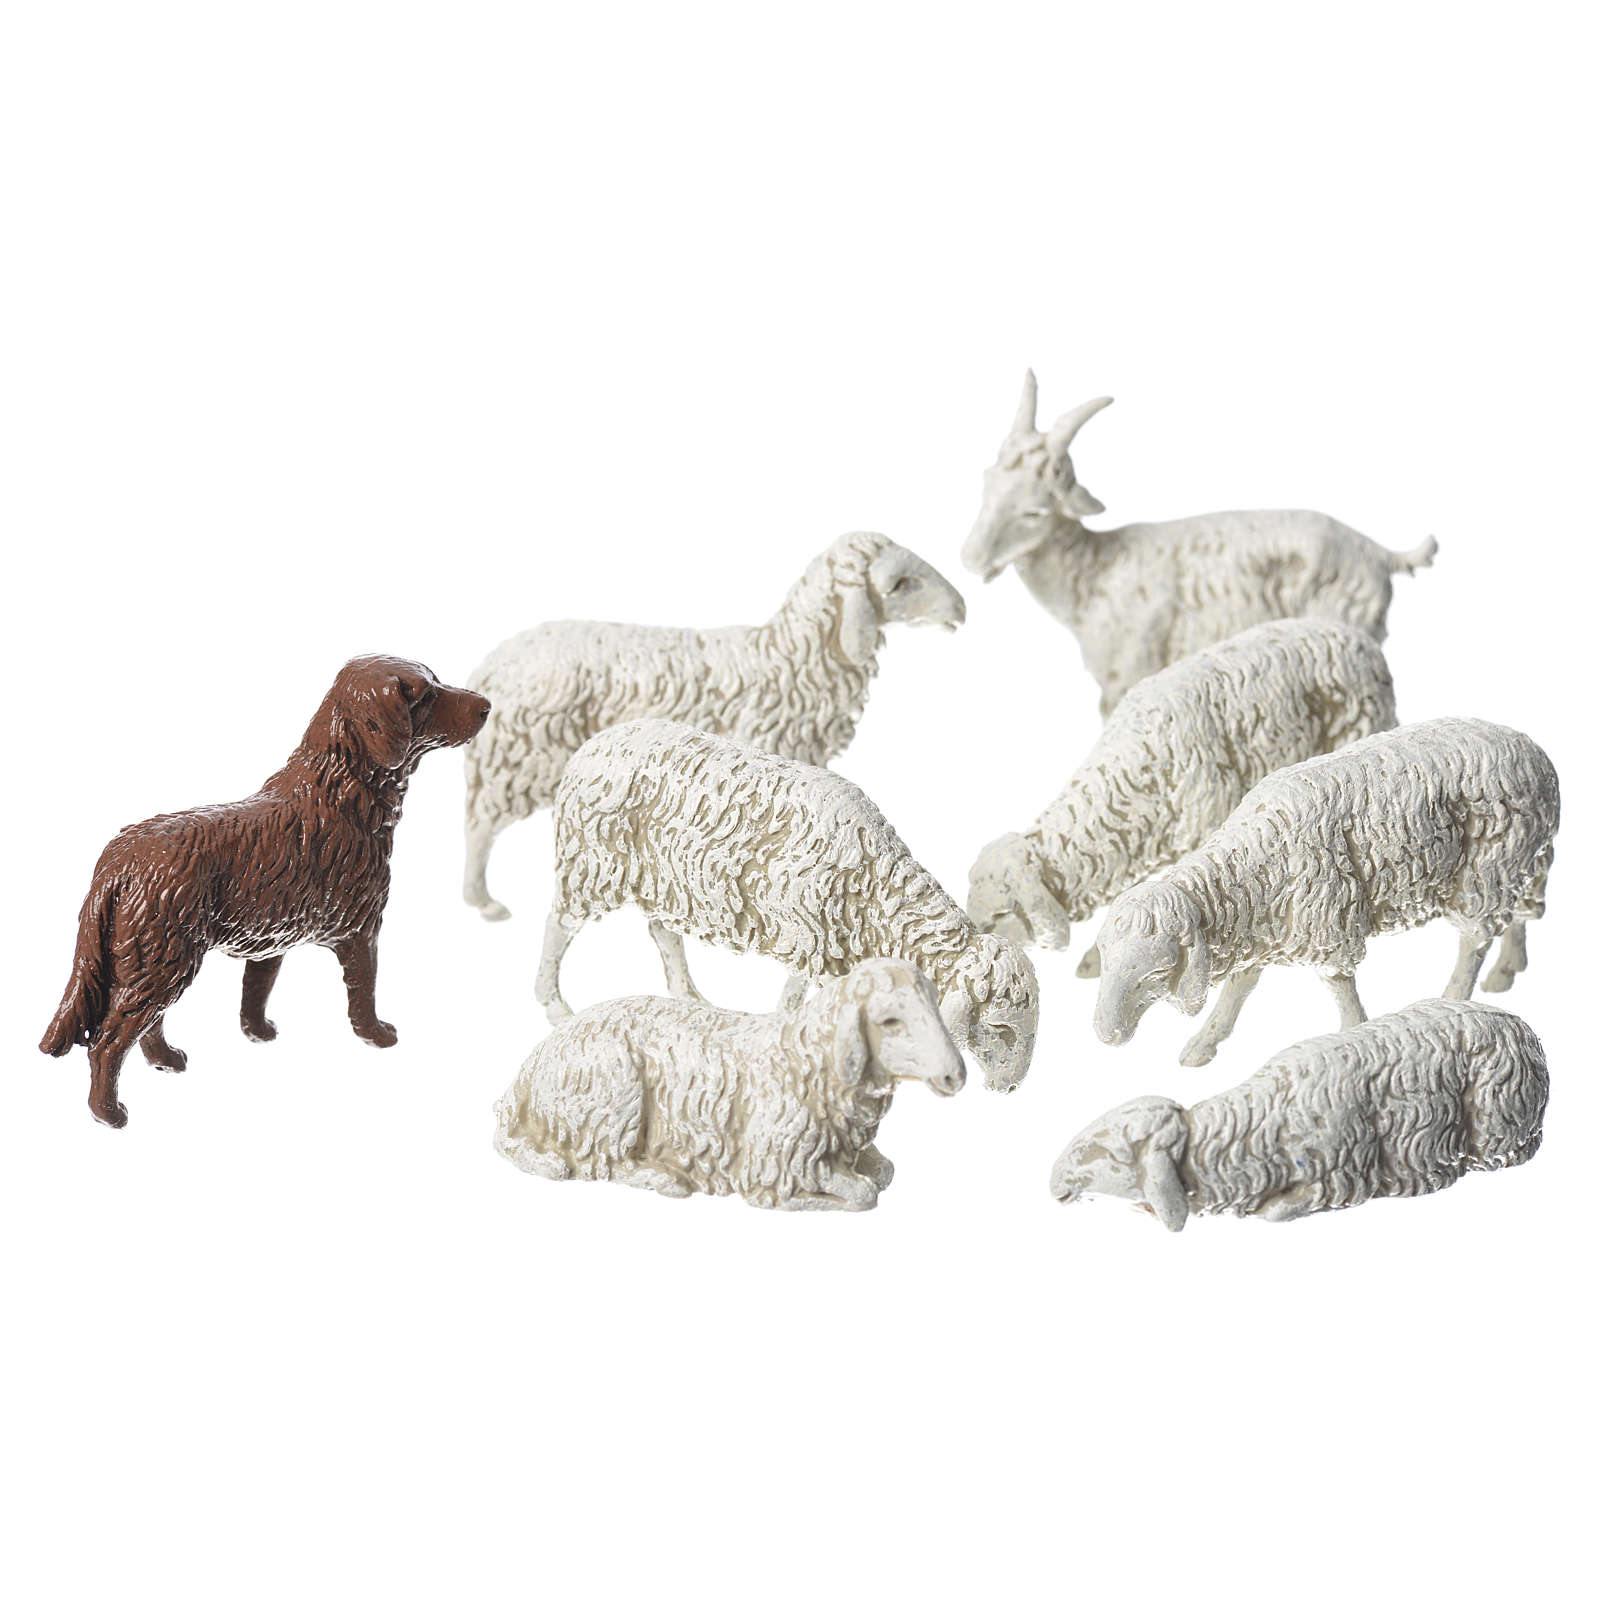 Nativity Scene goat dog and sheep by Moranduzzo 10cm, 8 pieces 4